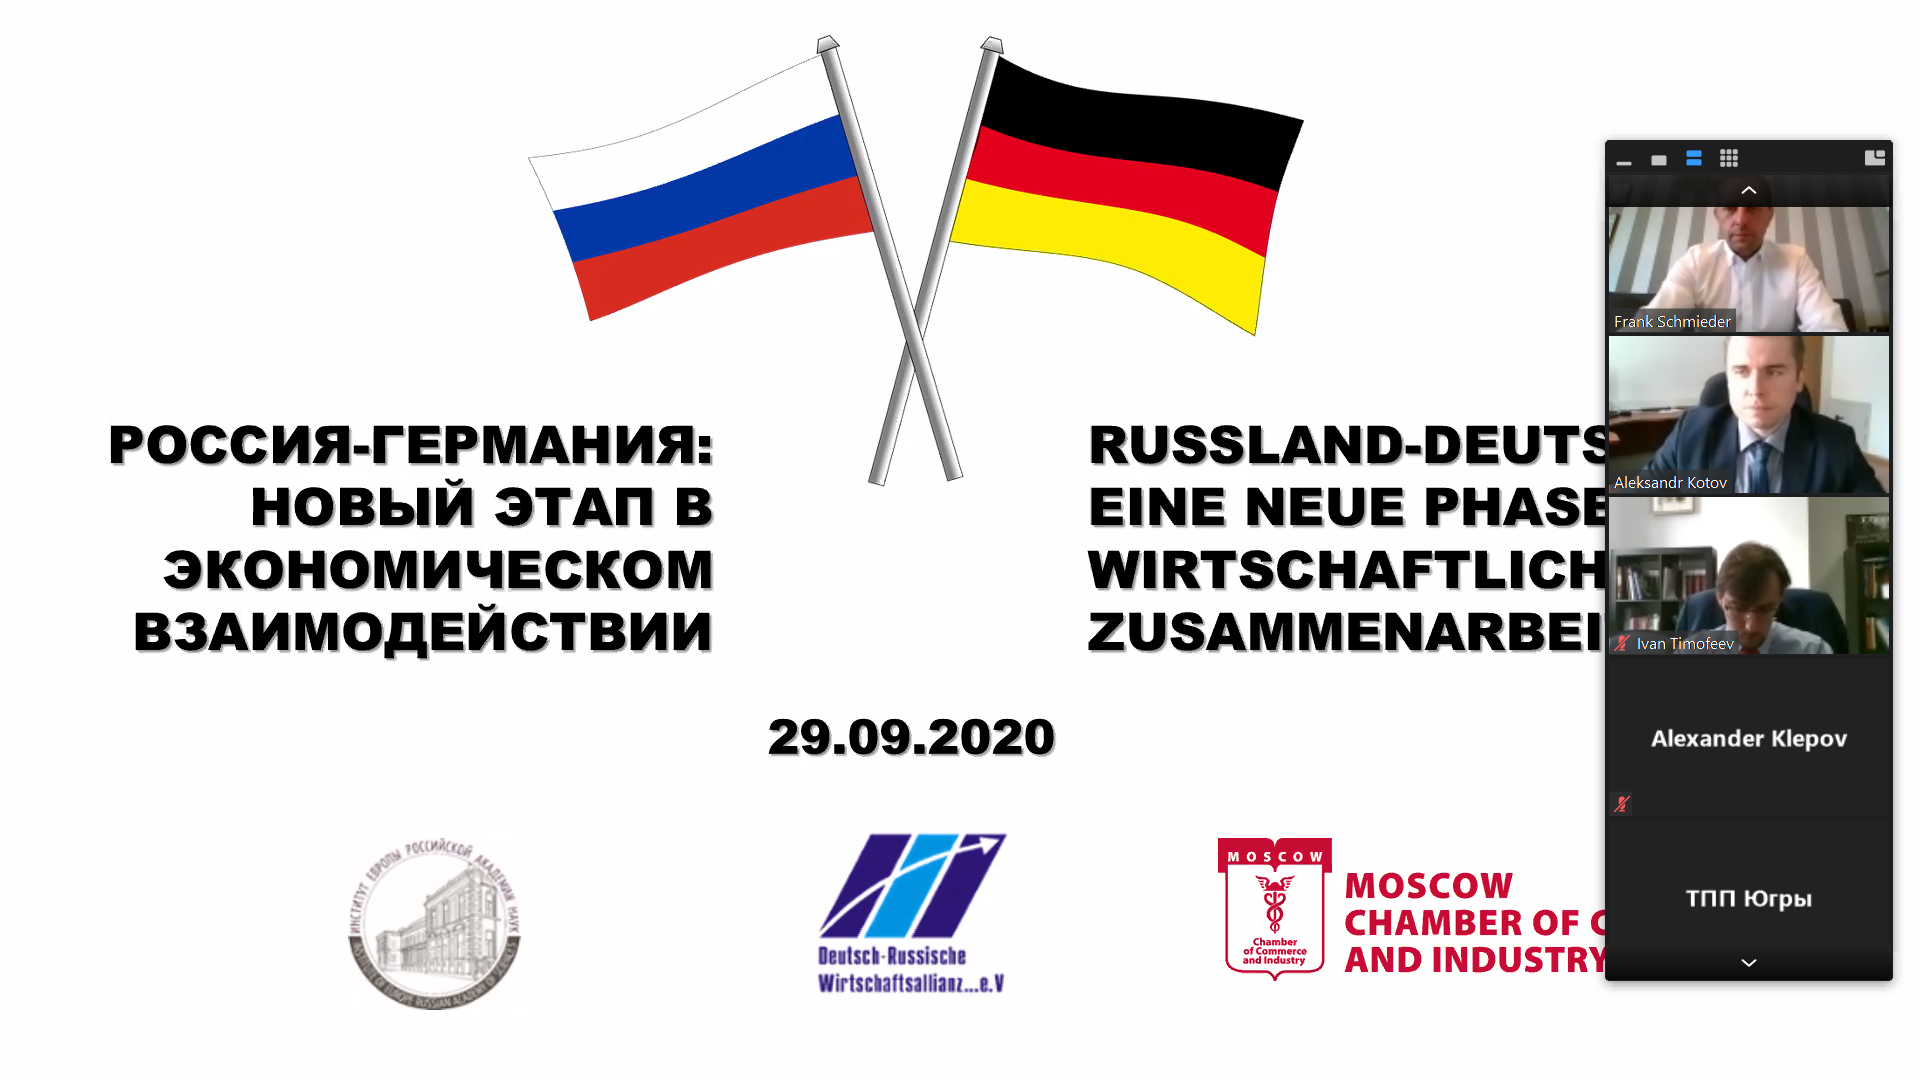 Businesswise, the alliance between Russia and Germany is expedient and profitable